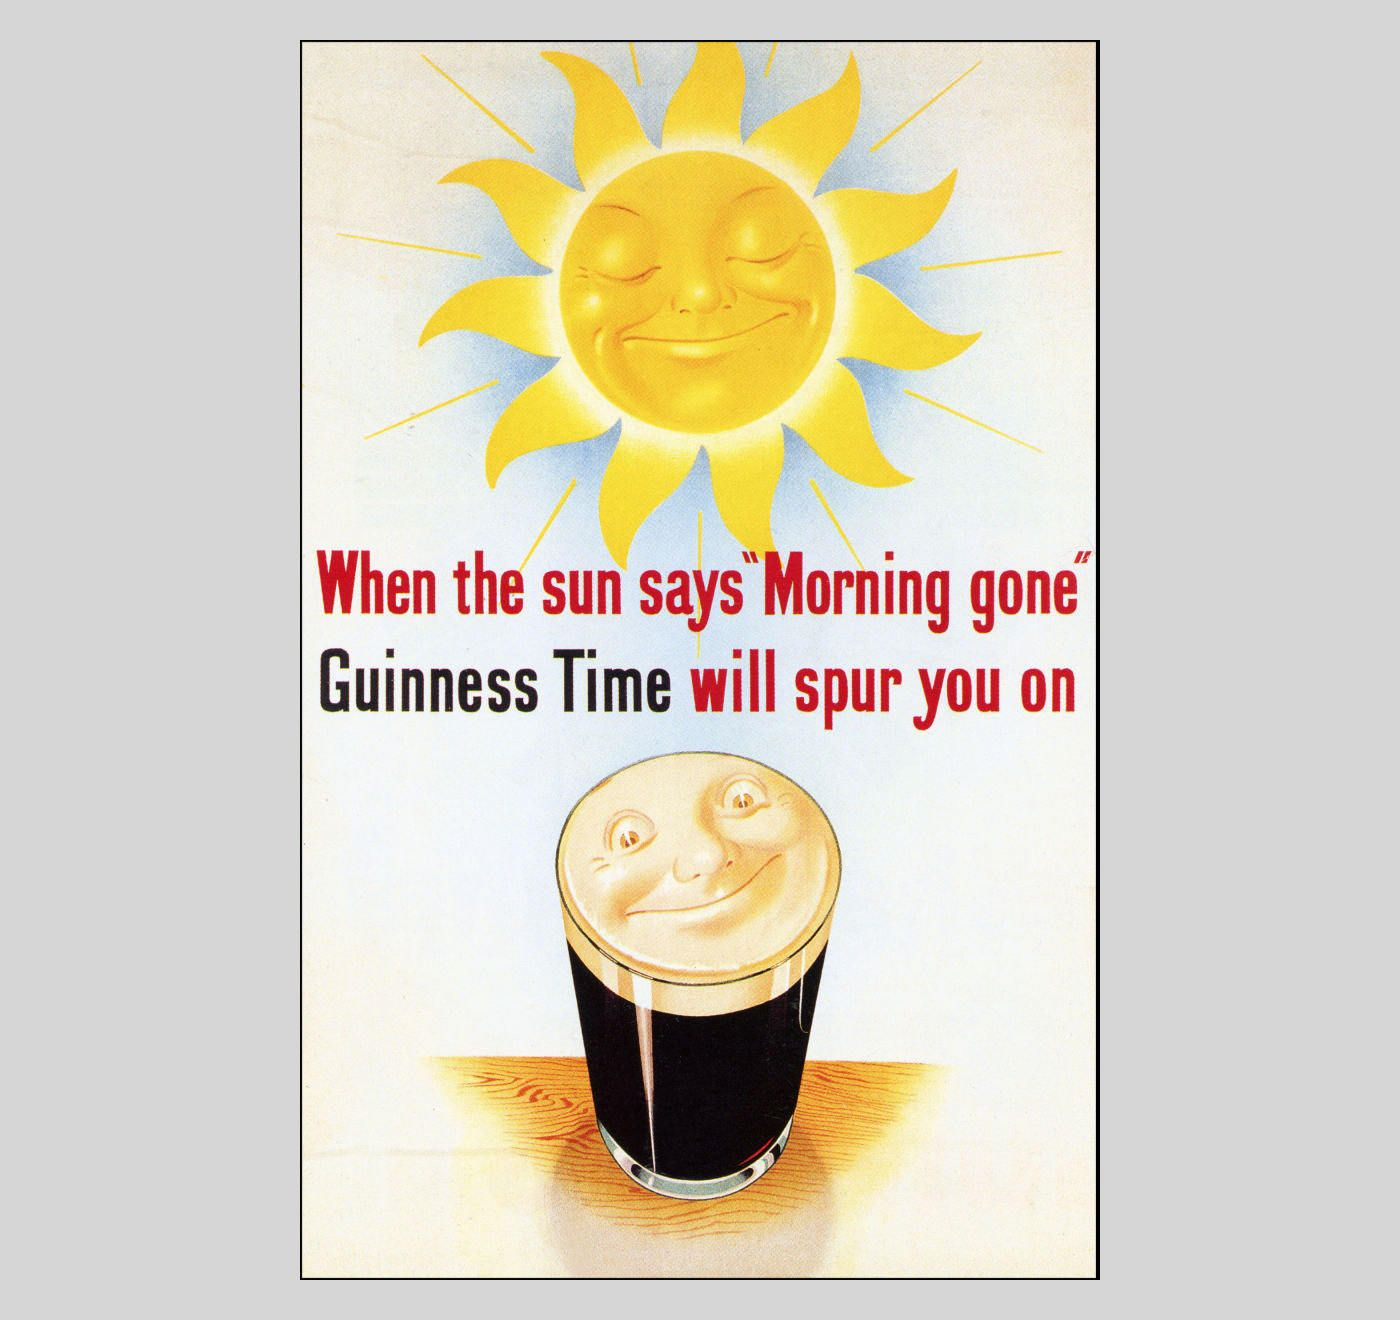 Morning Gone - 1950 Guinness - Vintage Poster Art Print Retro Style ...